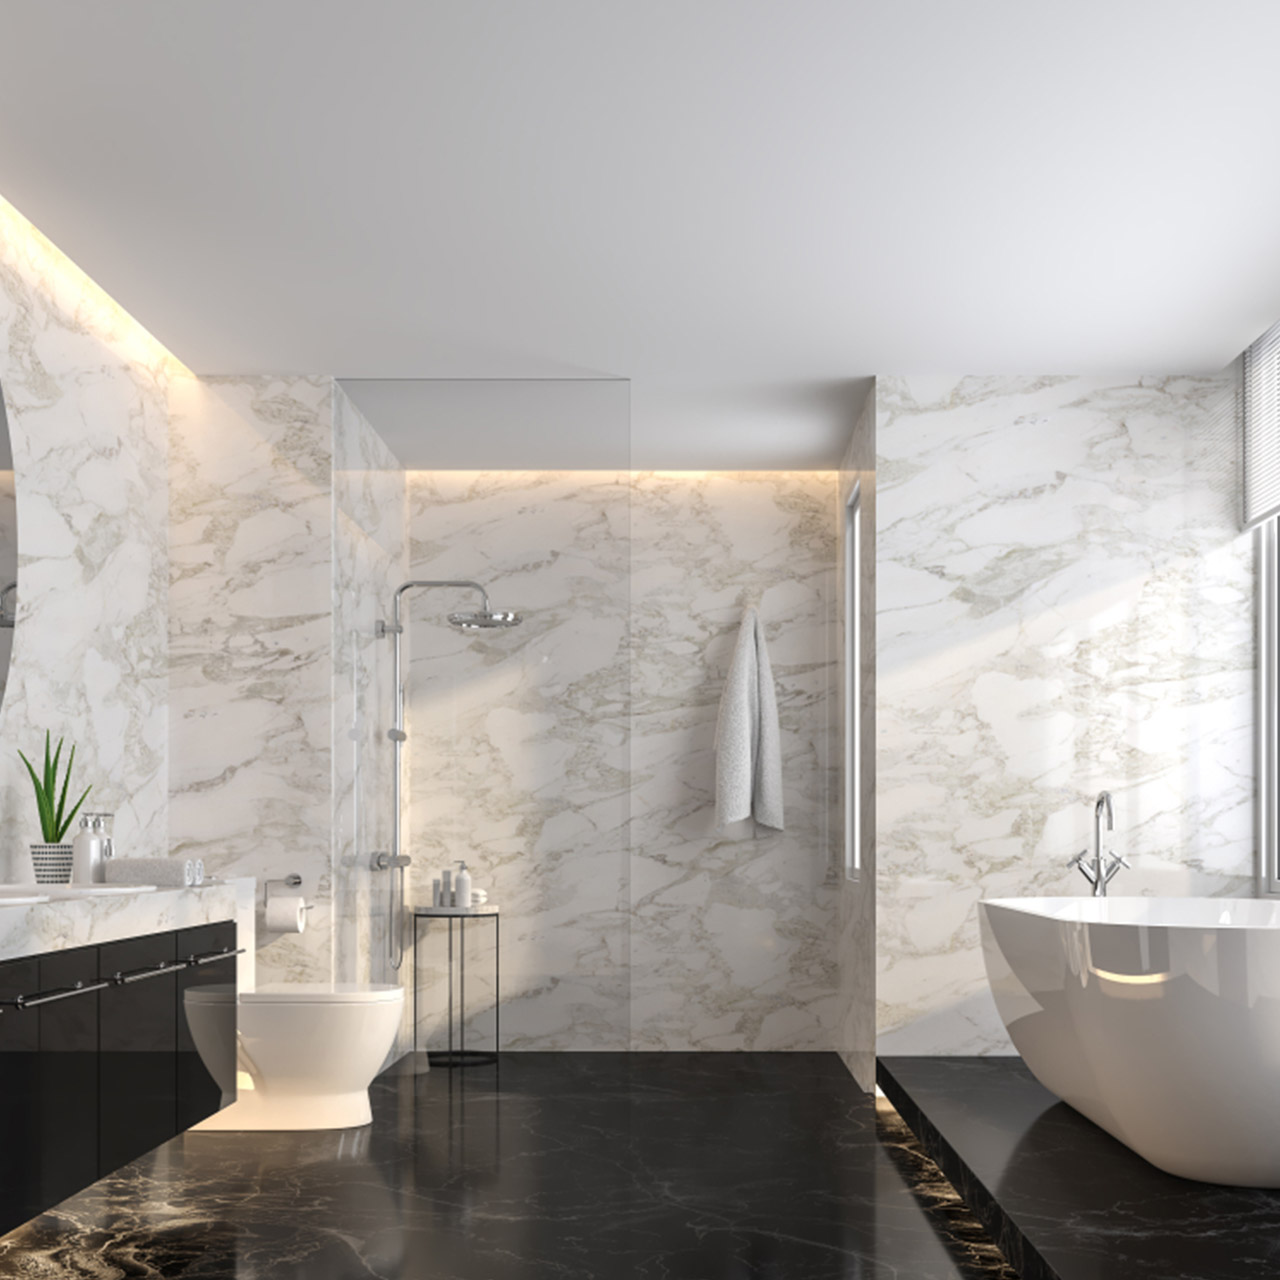 Lighting fixtures and elements for penthouse bathroom design